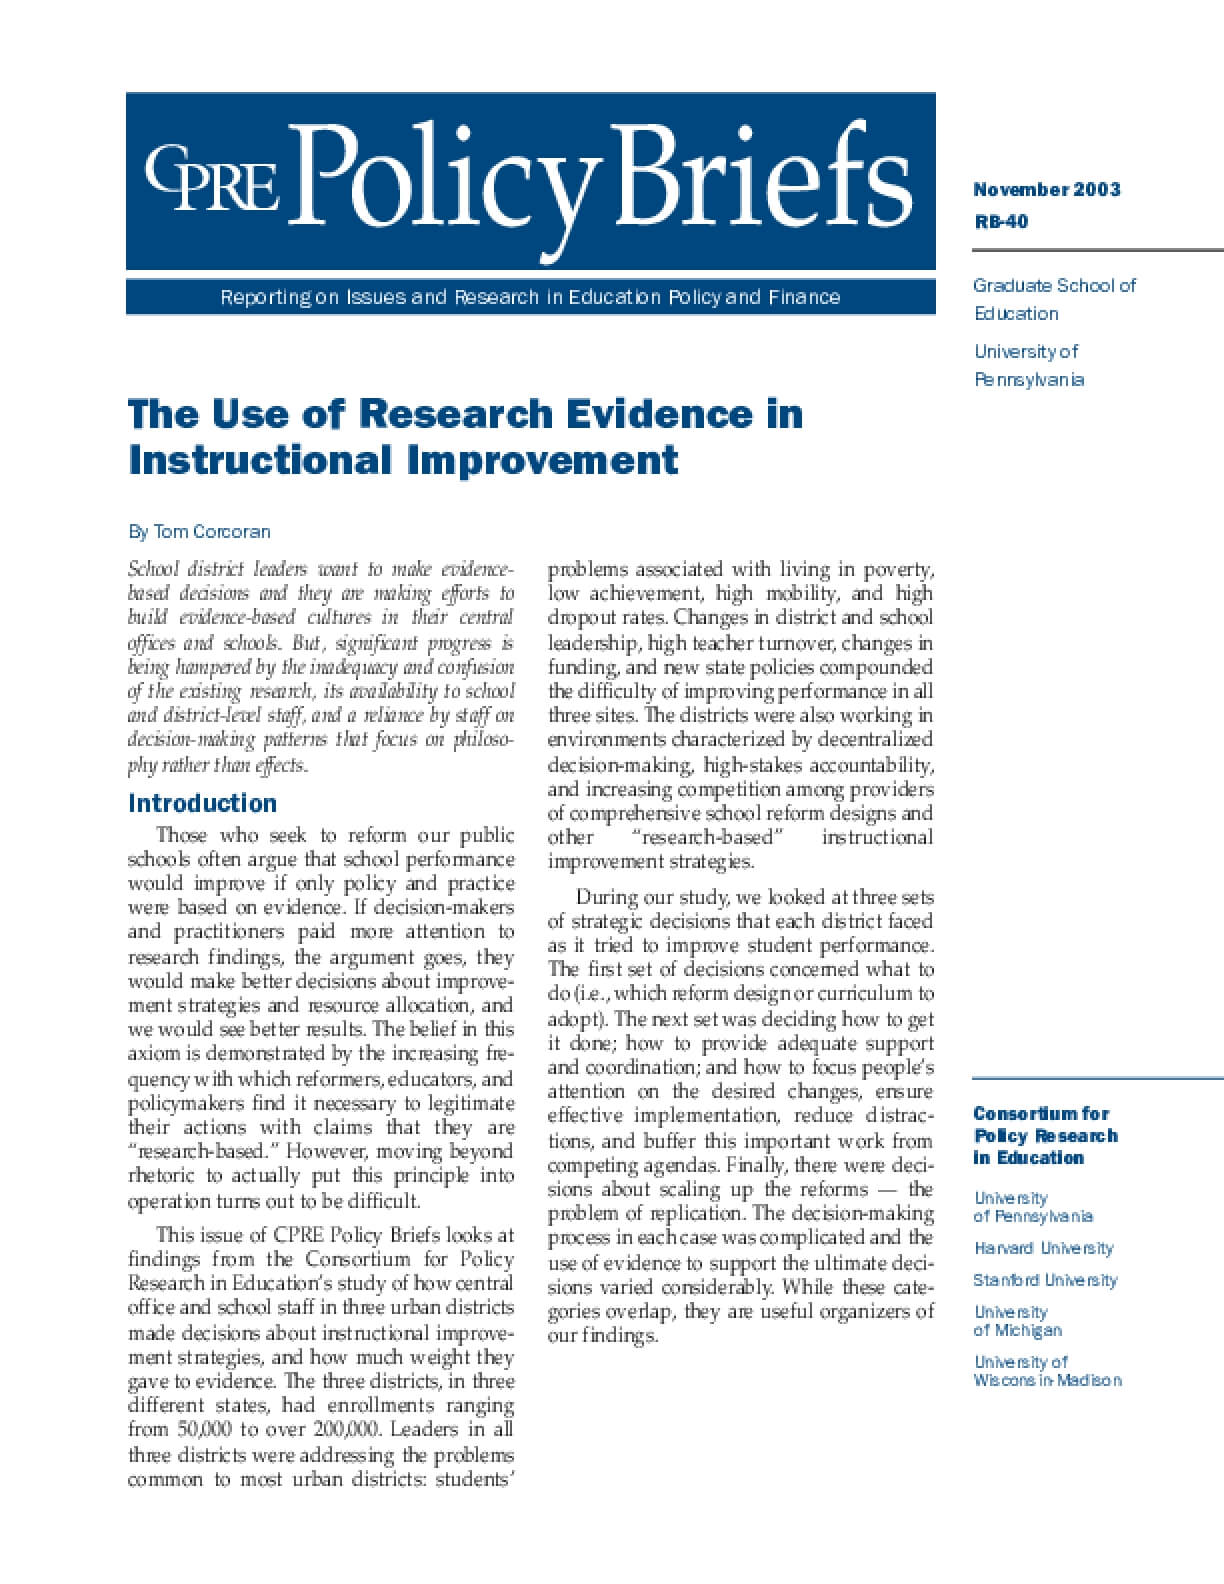 The Use of Research Evidence in Instructional Improvement